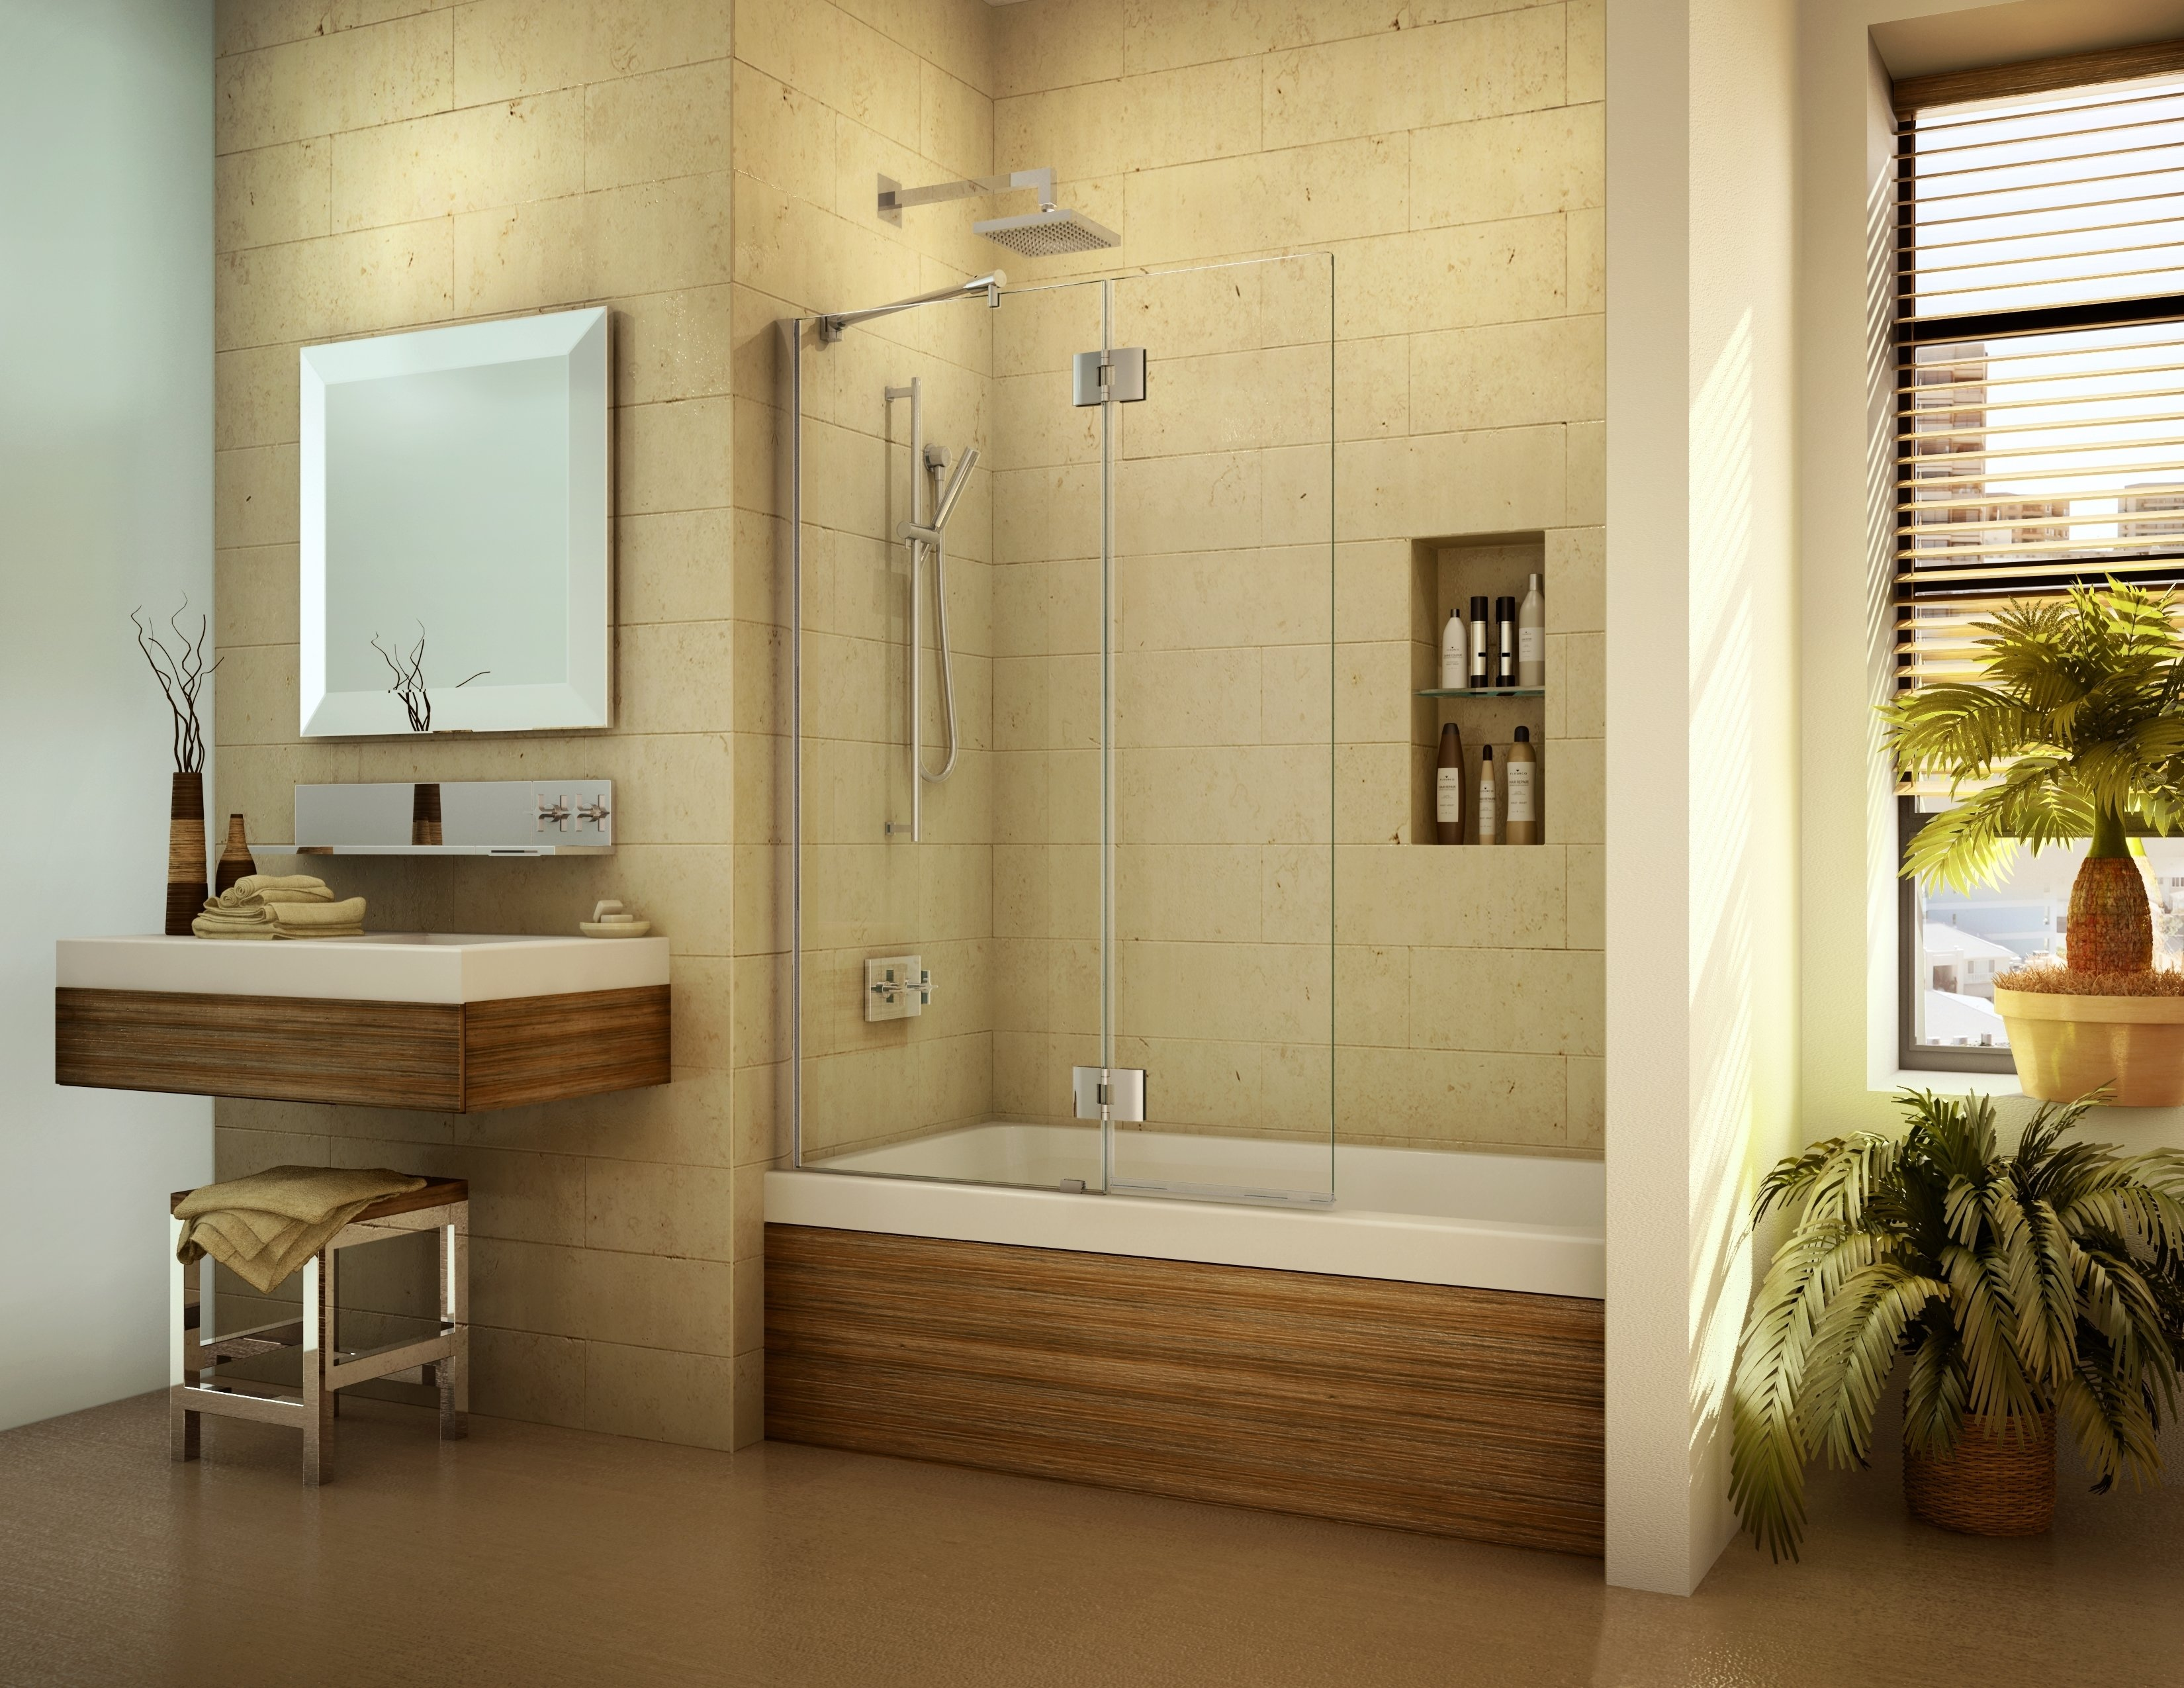 10 Awesome Bathroom Tubs And Showers Ideas brilliant bathroom shower tub ideas with bathroom tubs and showers